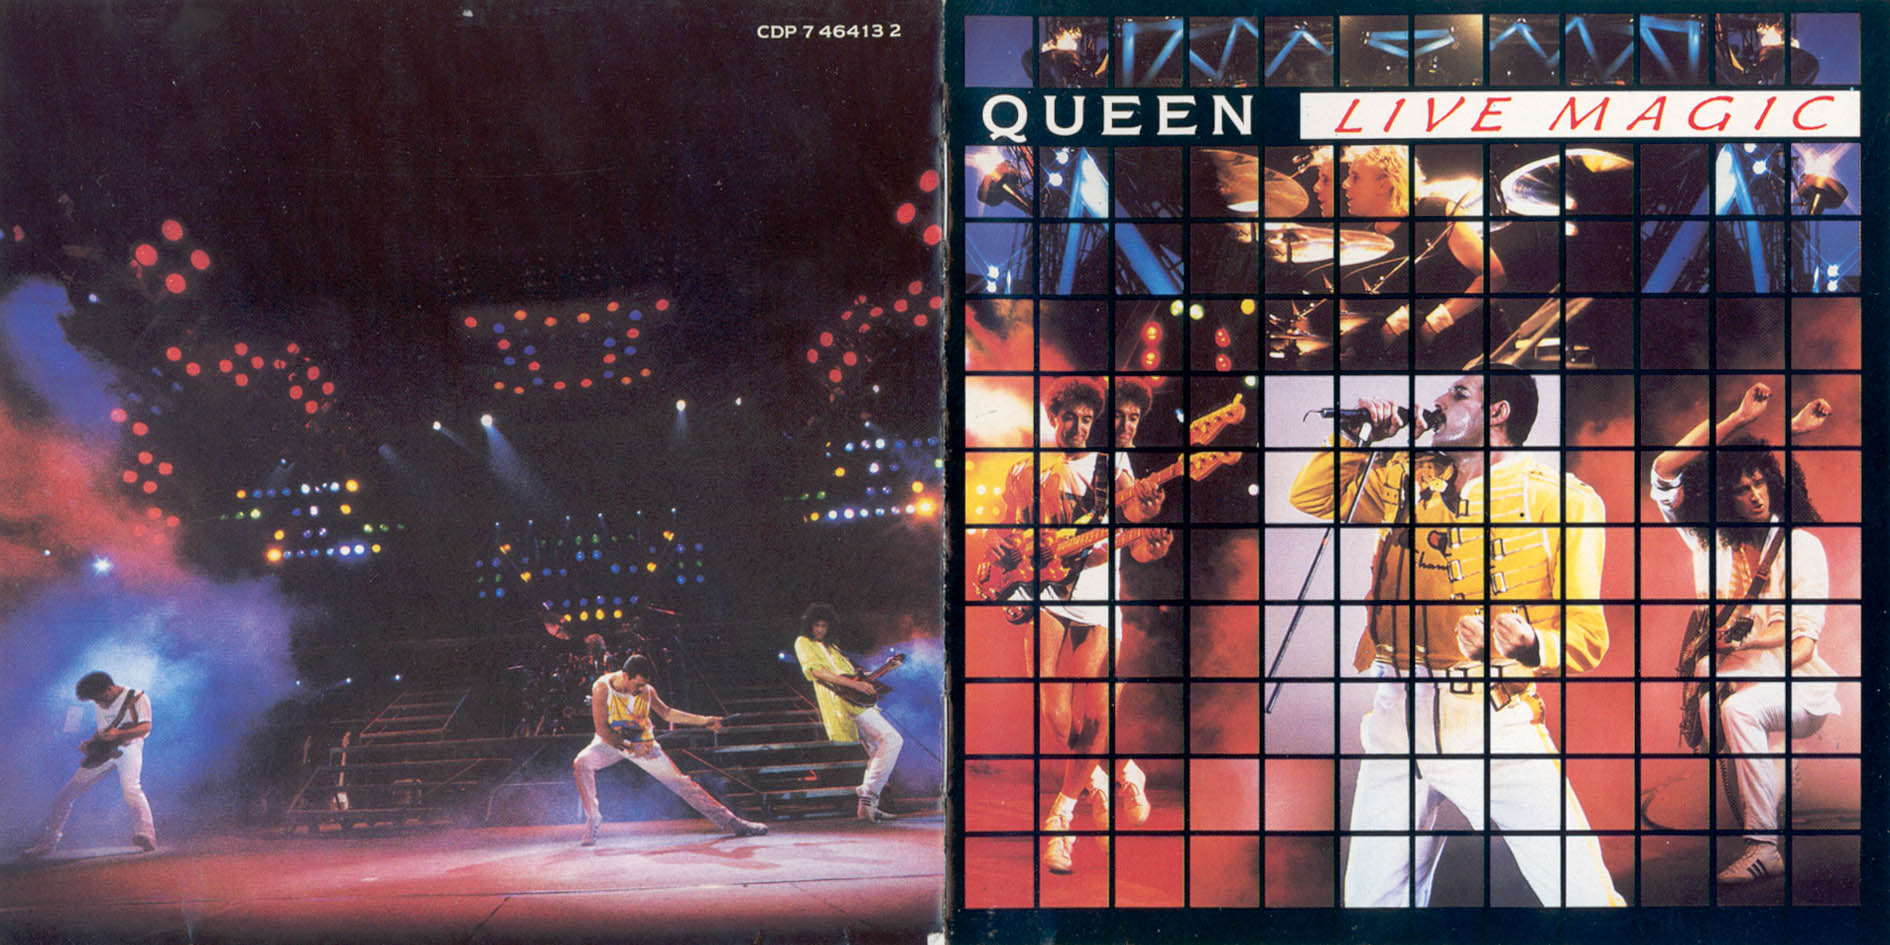 Queen - Live Magic 1986